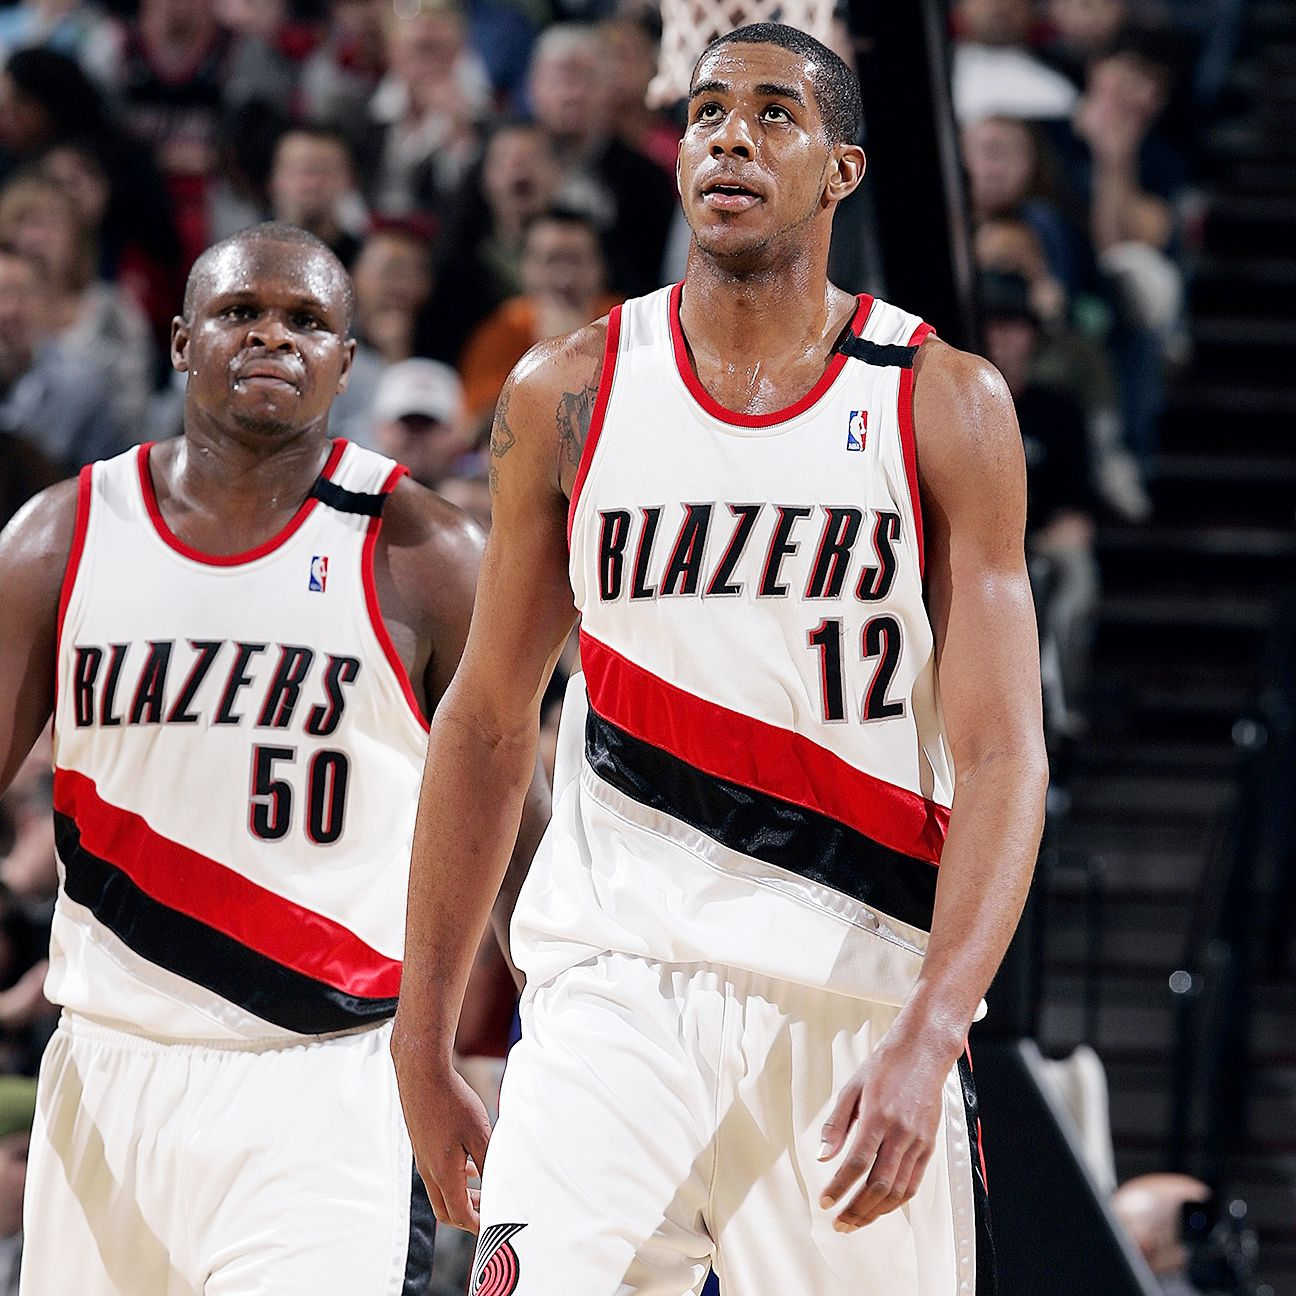 LaMarcus Aldridge Following In Zach Randolph's Footsteps